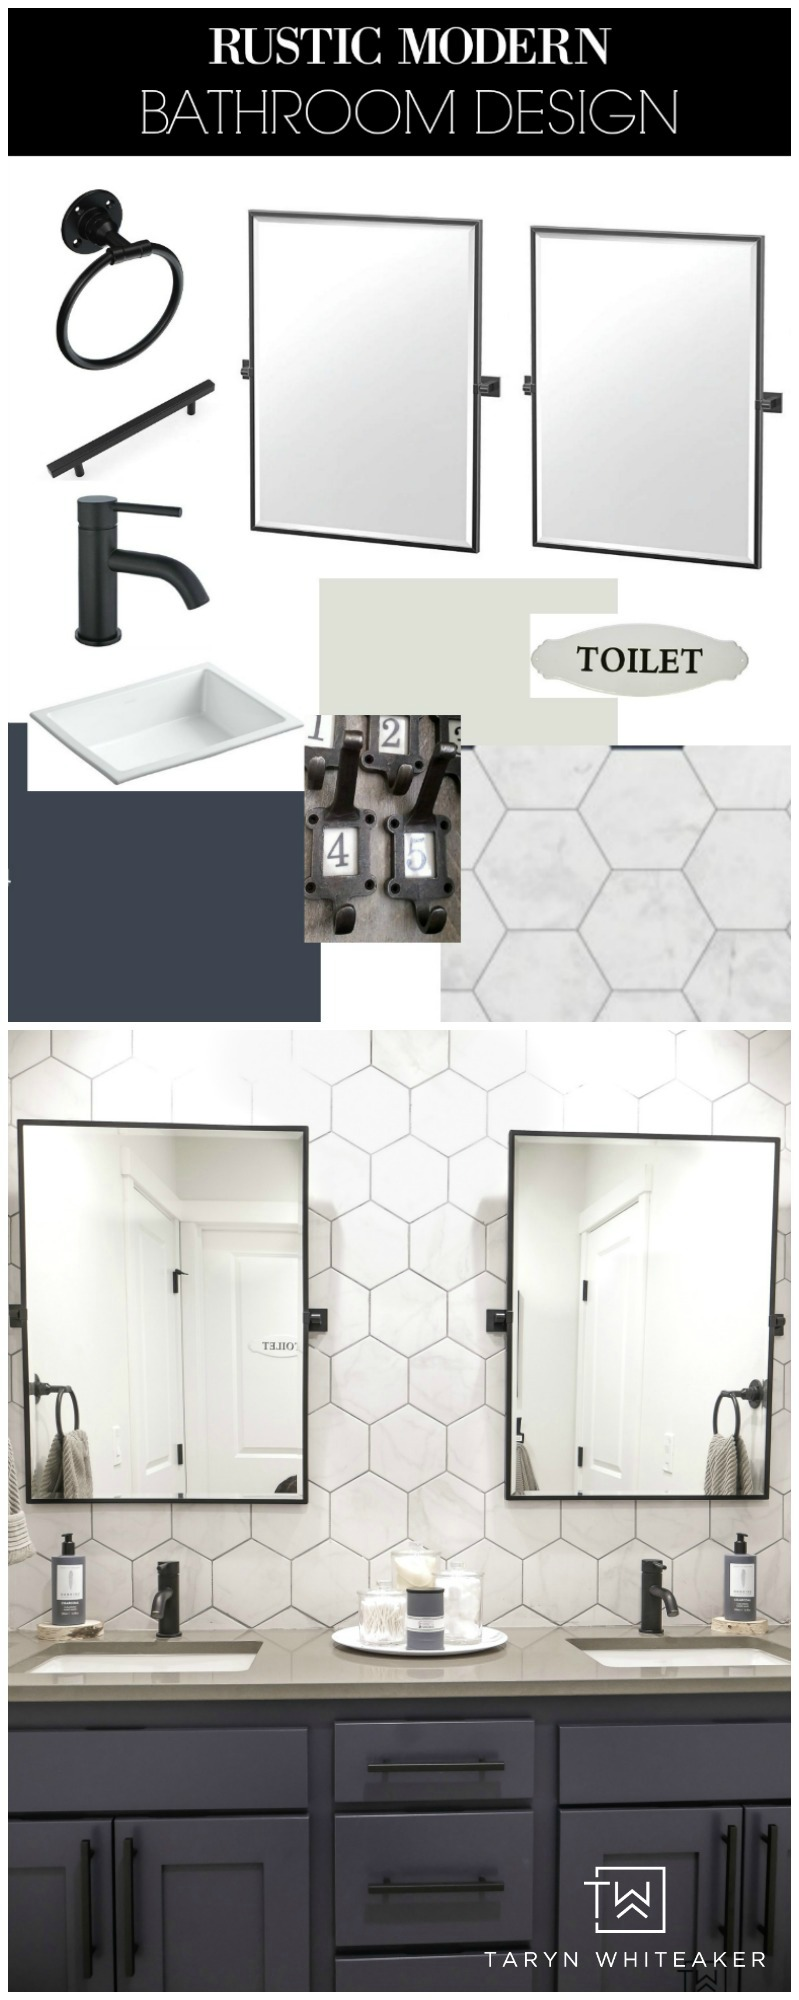 Get all the details on this Rustic Modern Bathroom Design! This post has direct links to all the products, most are very reasonably priced!